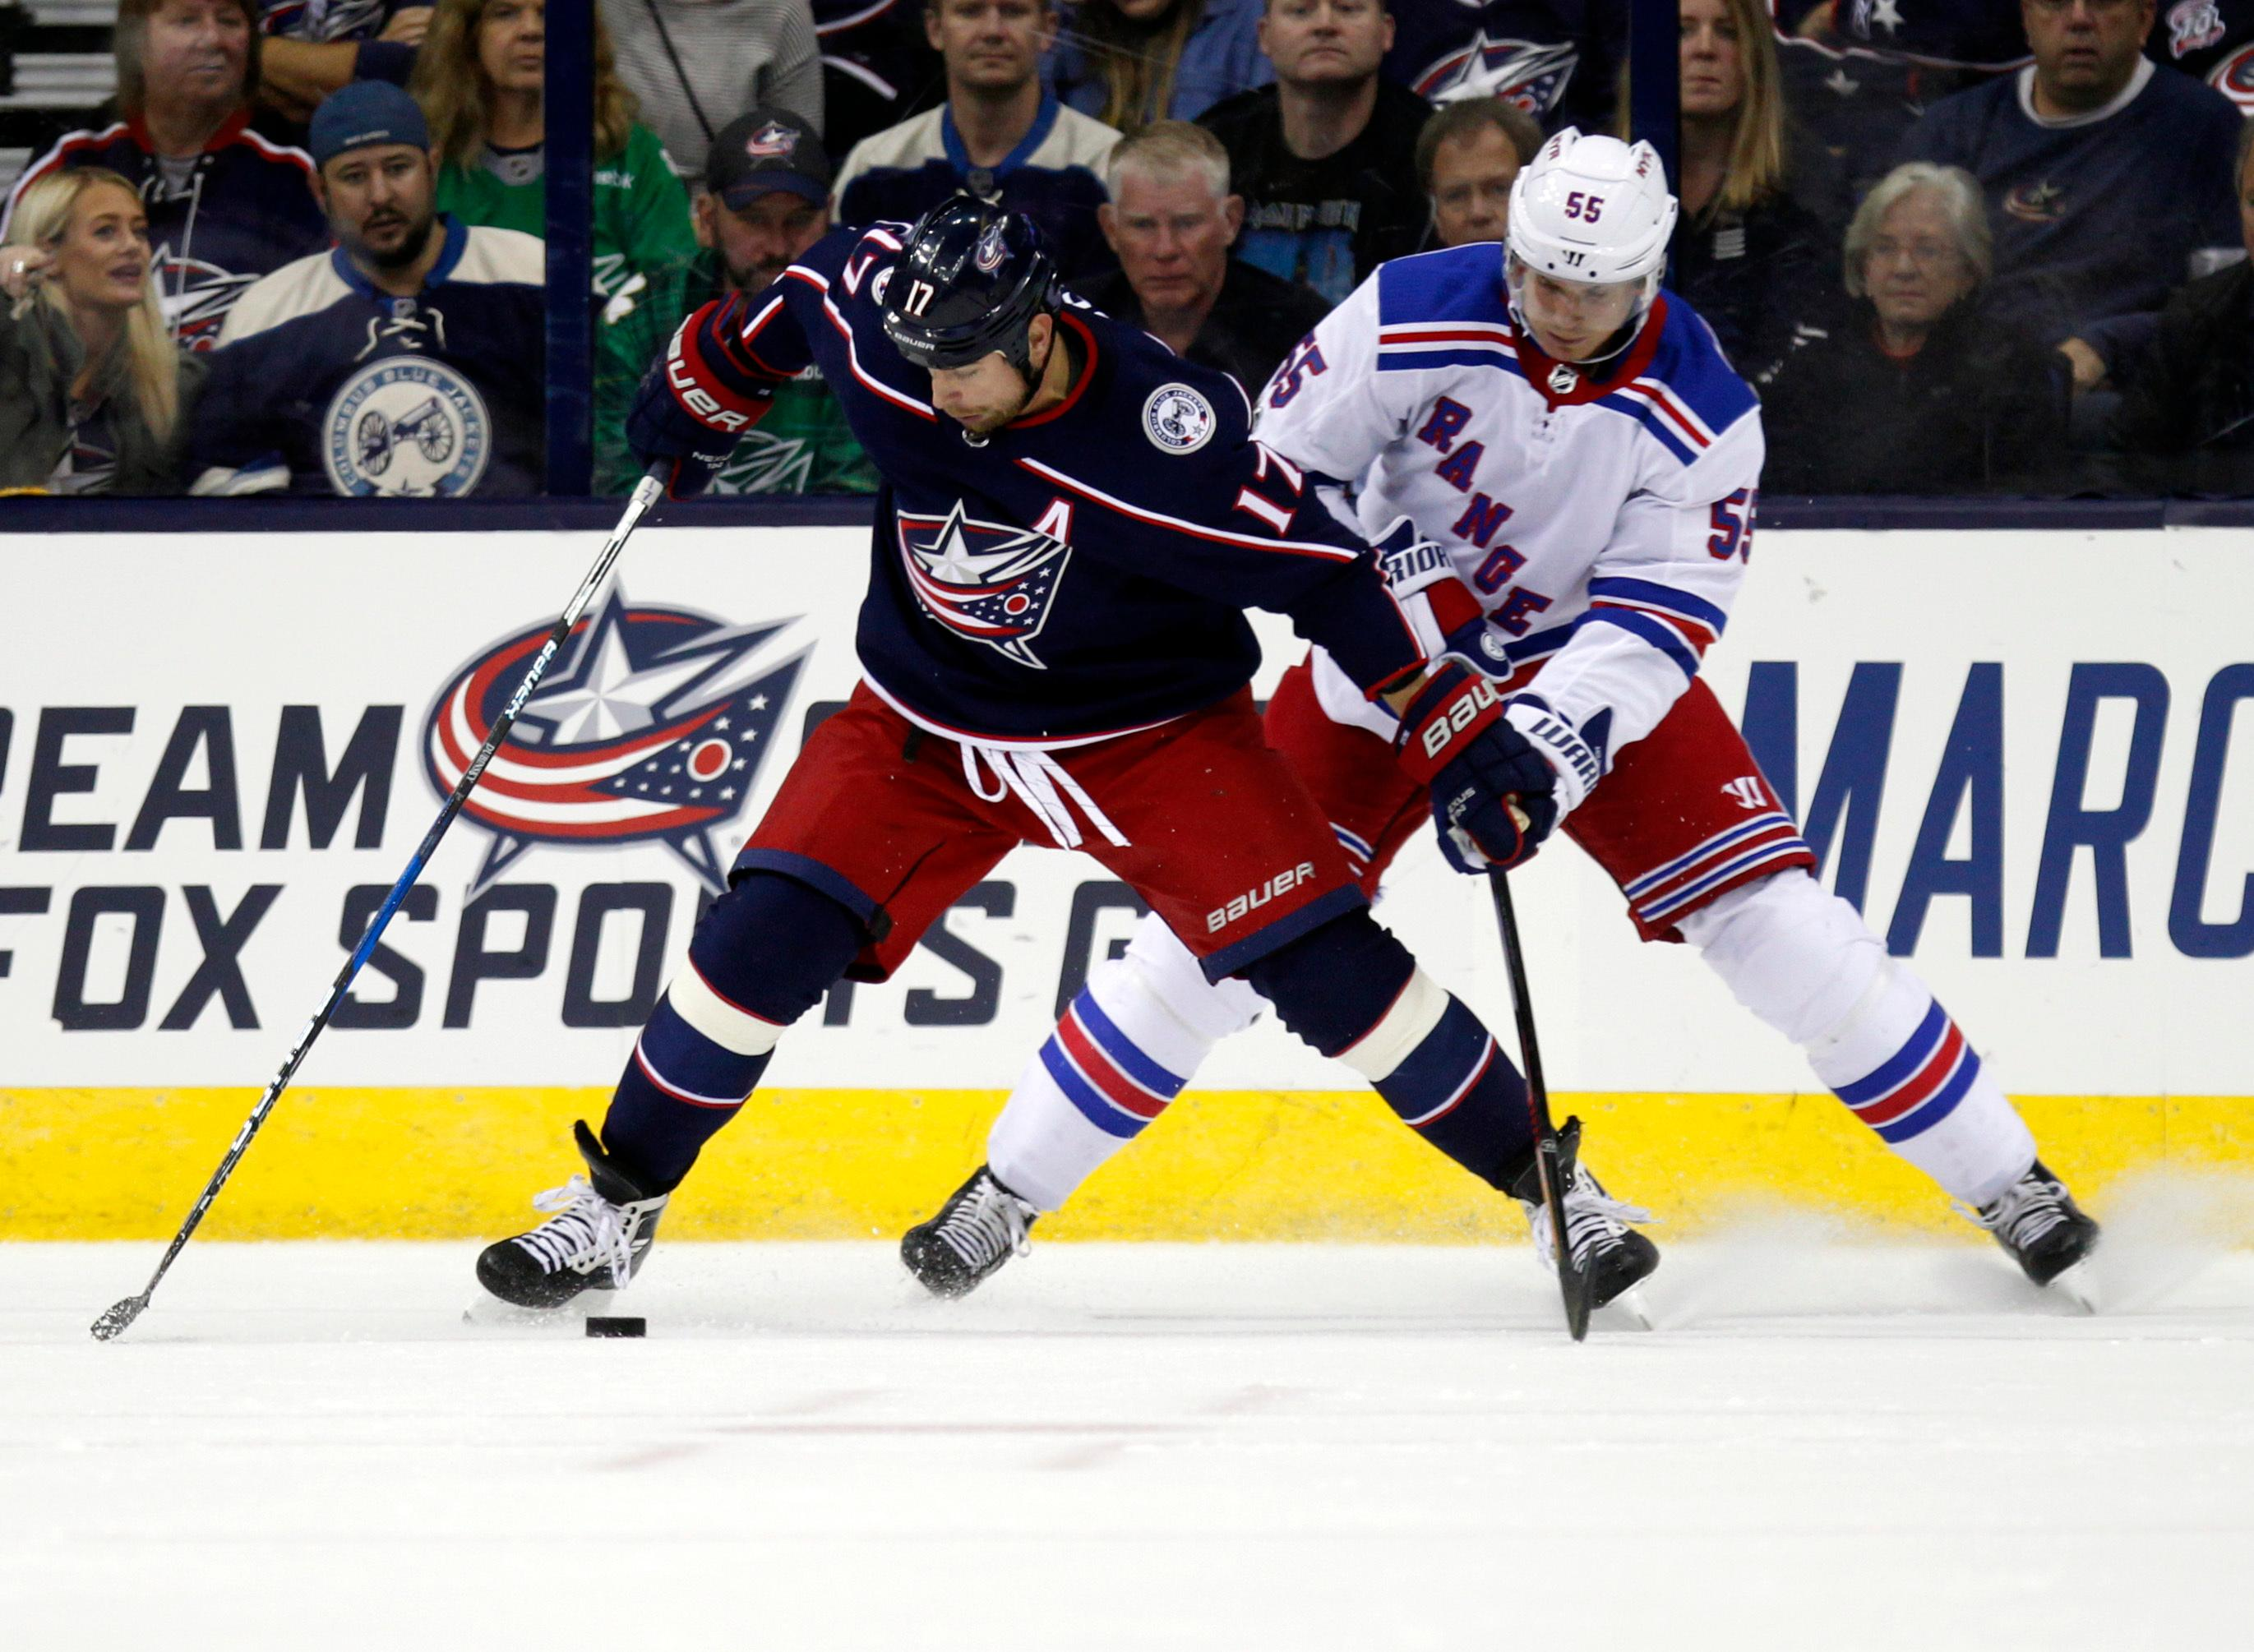 Columbus Blue Jackets forward Brandon Dubinsky, left, works against New York Rangers defenseman Nick Holden during the first period of an NHL hockey game in Columbus, Ohio, Friday, Oct. 13, 2017. (AP Photo/Paul Vernon)